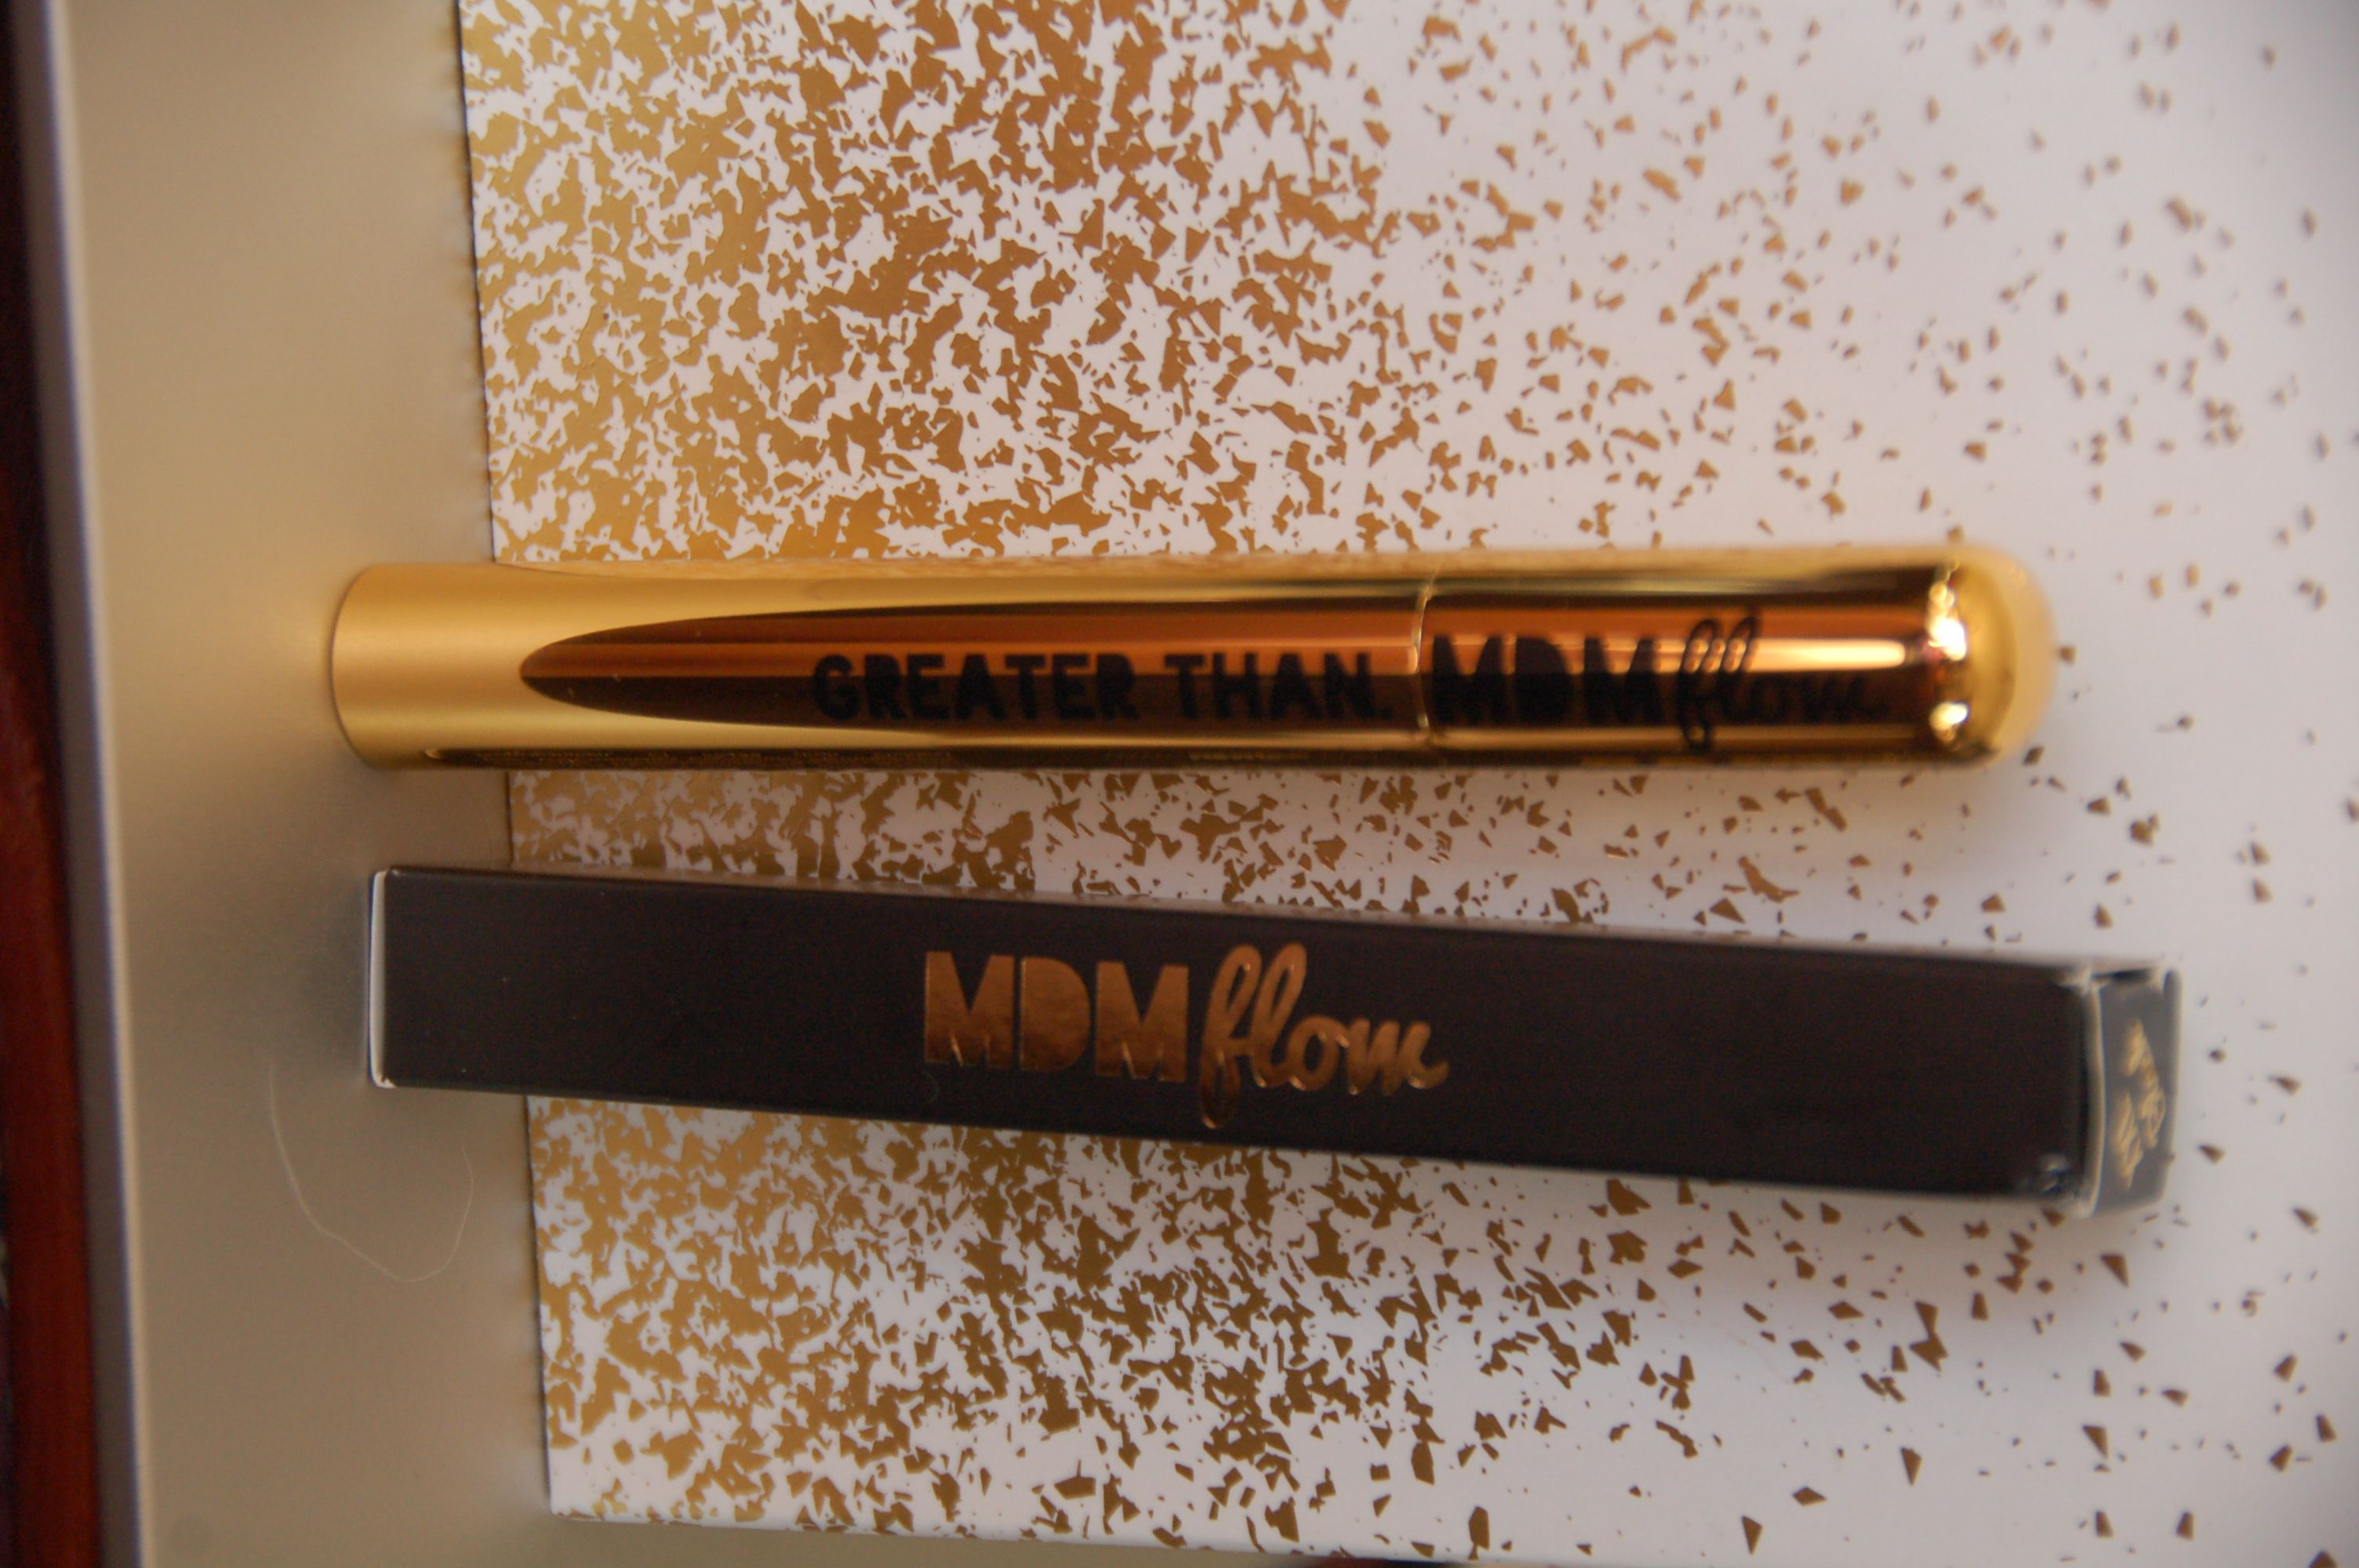 MDMflow Volumizing Mascara .2 fl oz $15.00. Shipping on this item will be at least $2.50 in shipping - New